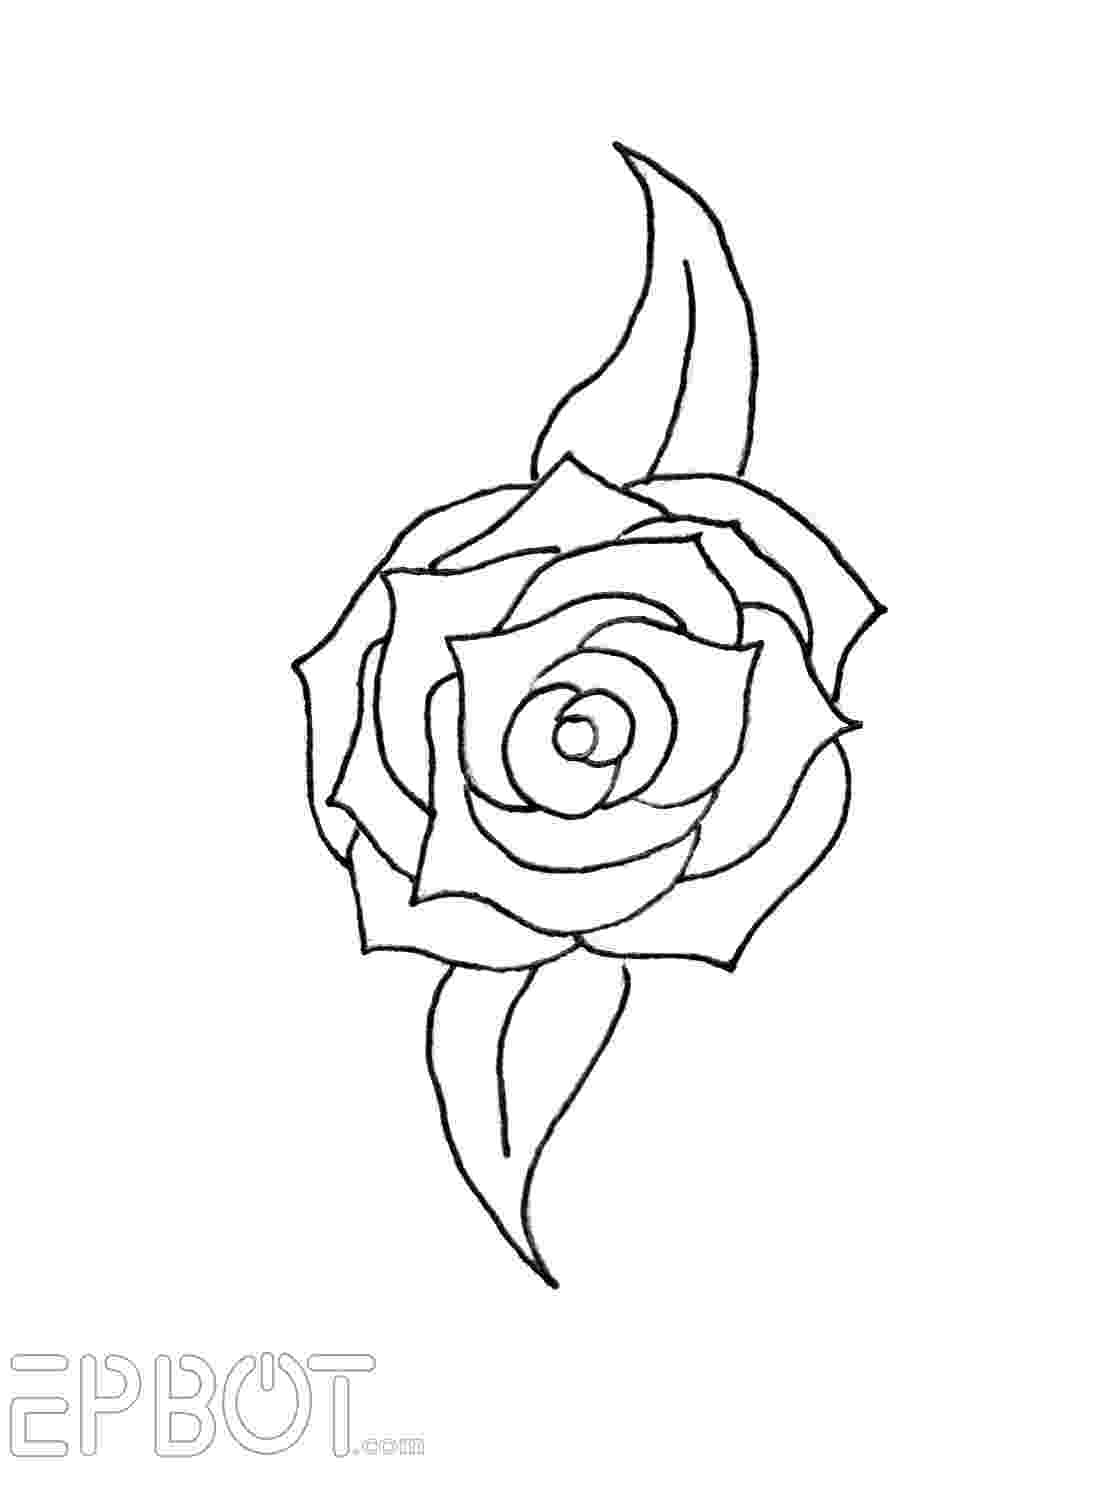 rose pictures to trace how to draw a rose rose pictures trace to